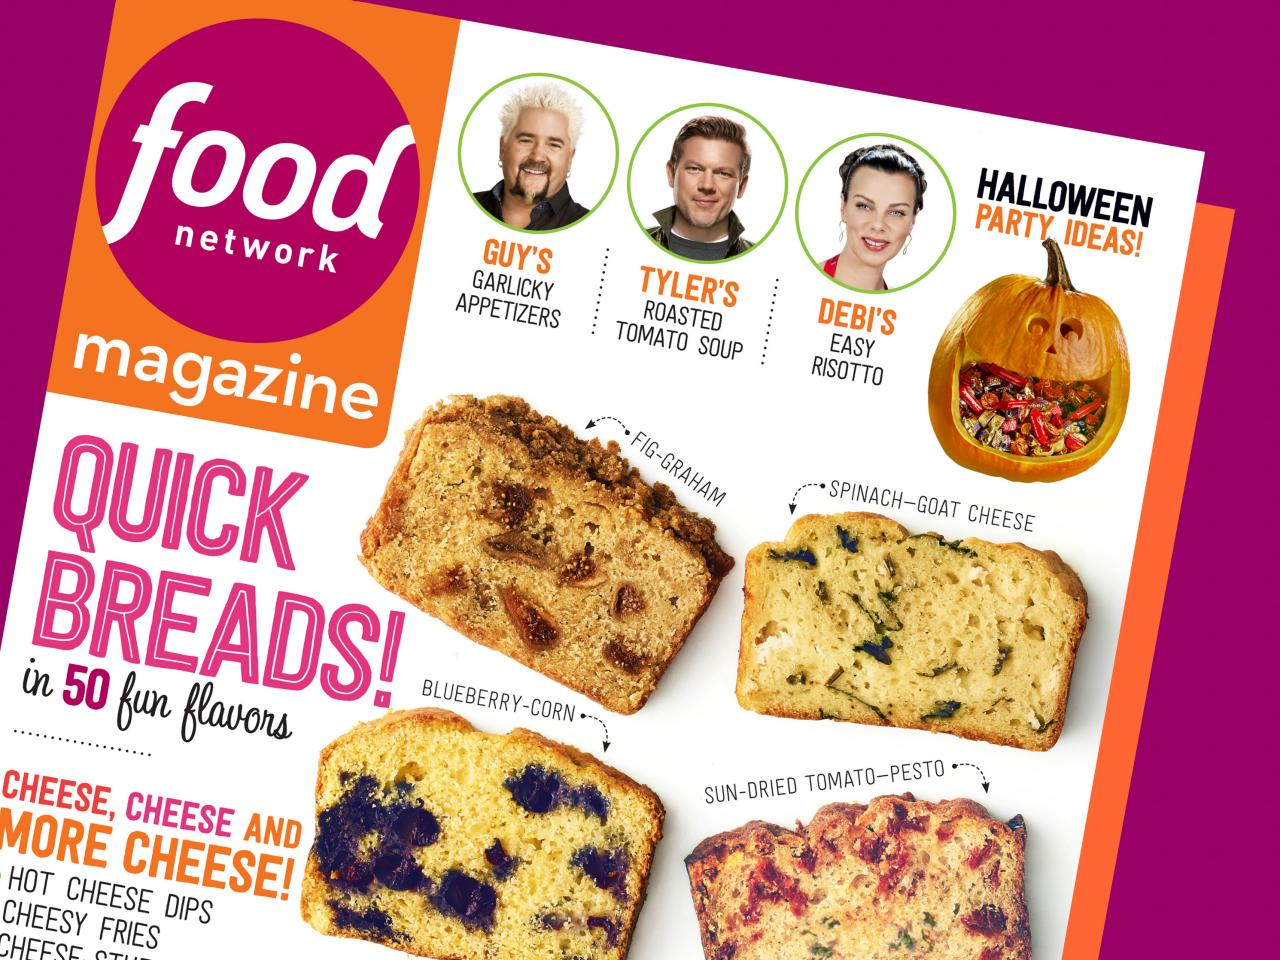 Food network magazine october 2014 recipe index food for October recipes